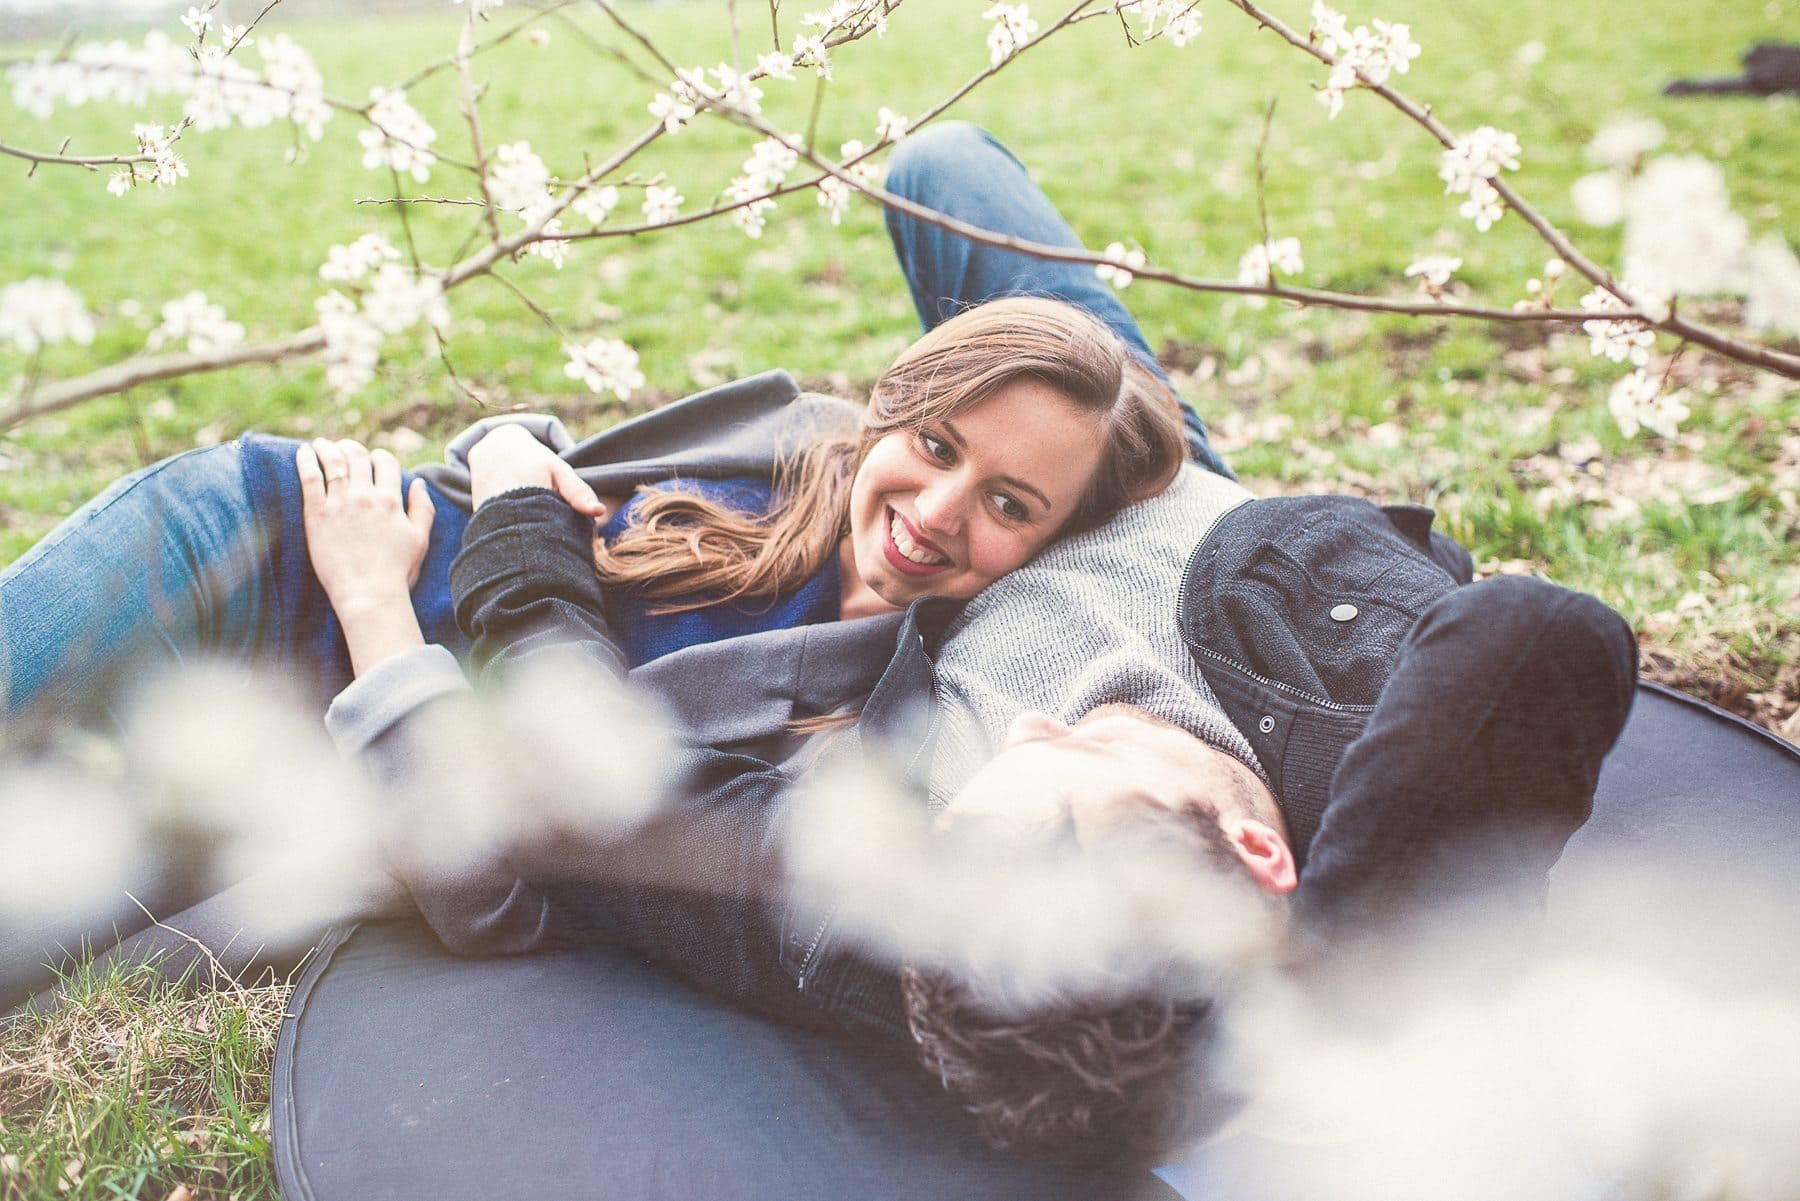 Couple lying and smiling at each other surrounded by cherry blossoms